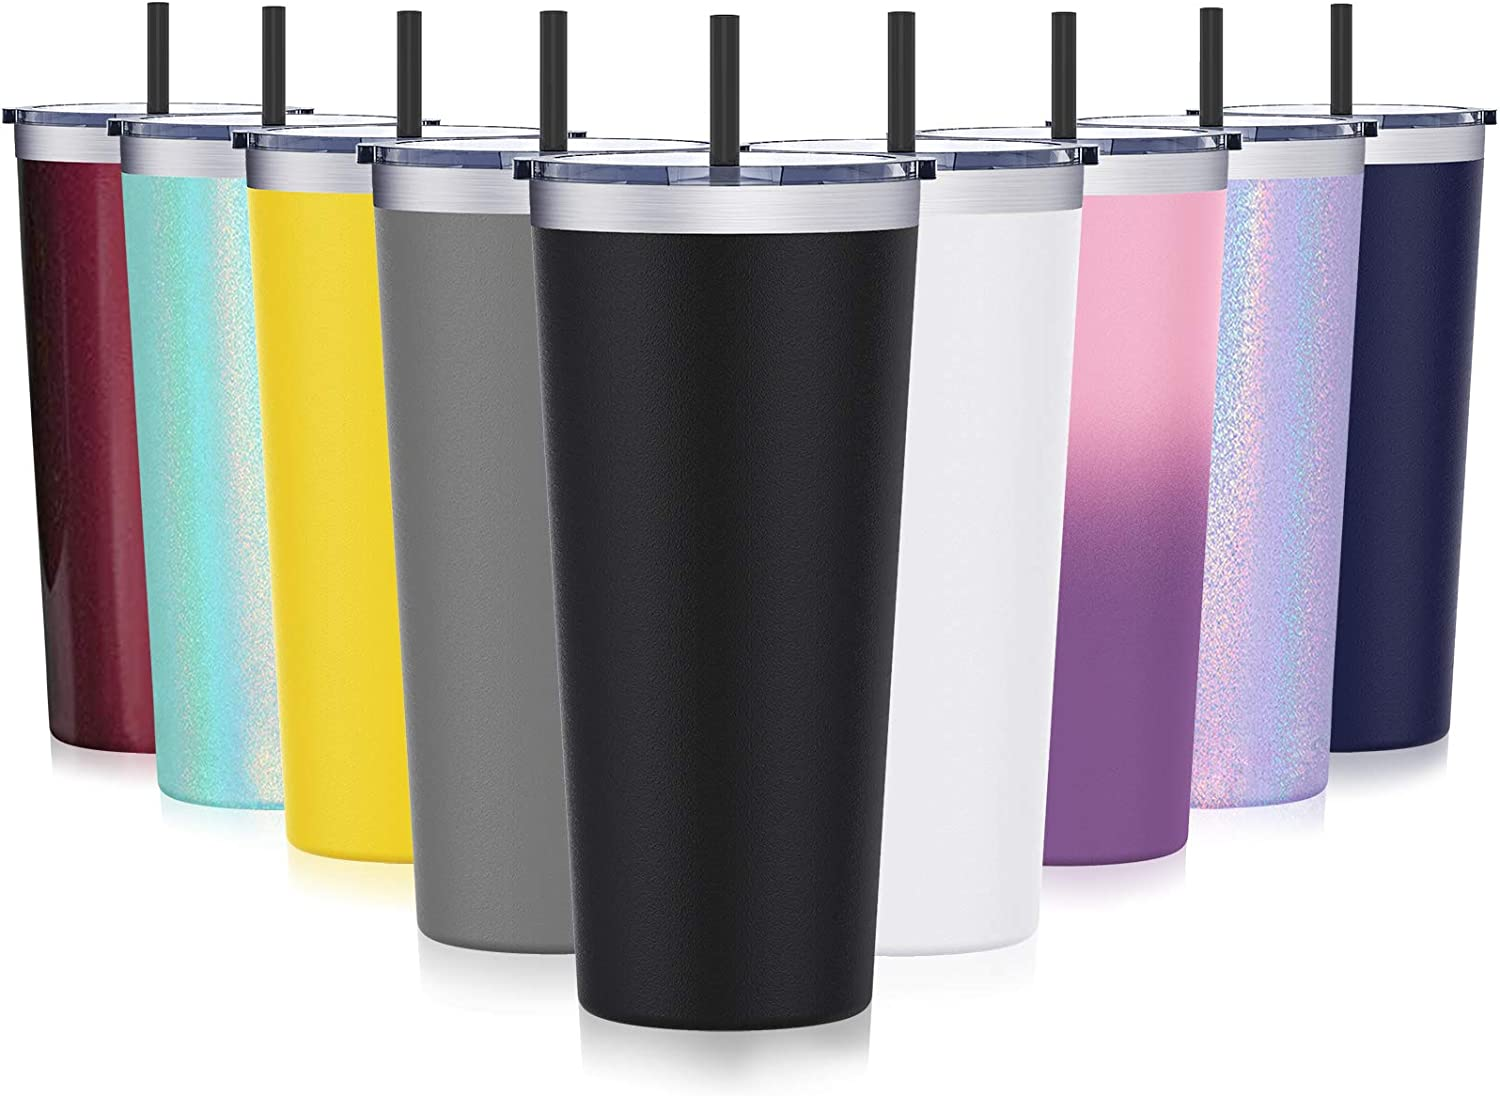 Travel Tumbler with Splash Proof Lid, Aikico 22oz Vacuum Insulated Coffee Tumblers Cups, Double Wall Travel Mug with Straws, Keeps Drinks Cold & Hot, Black